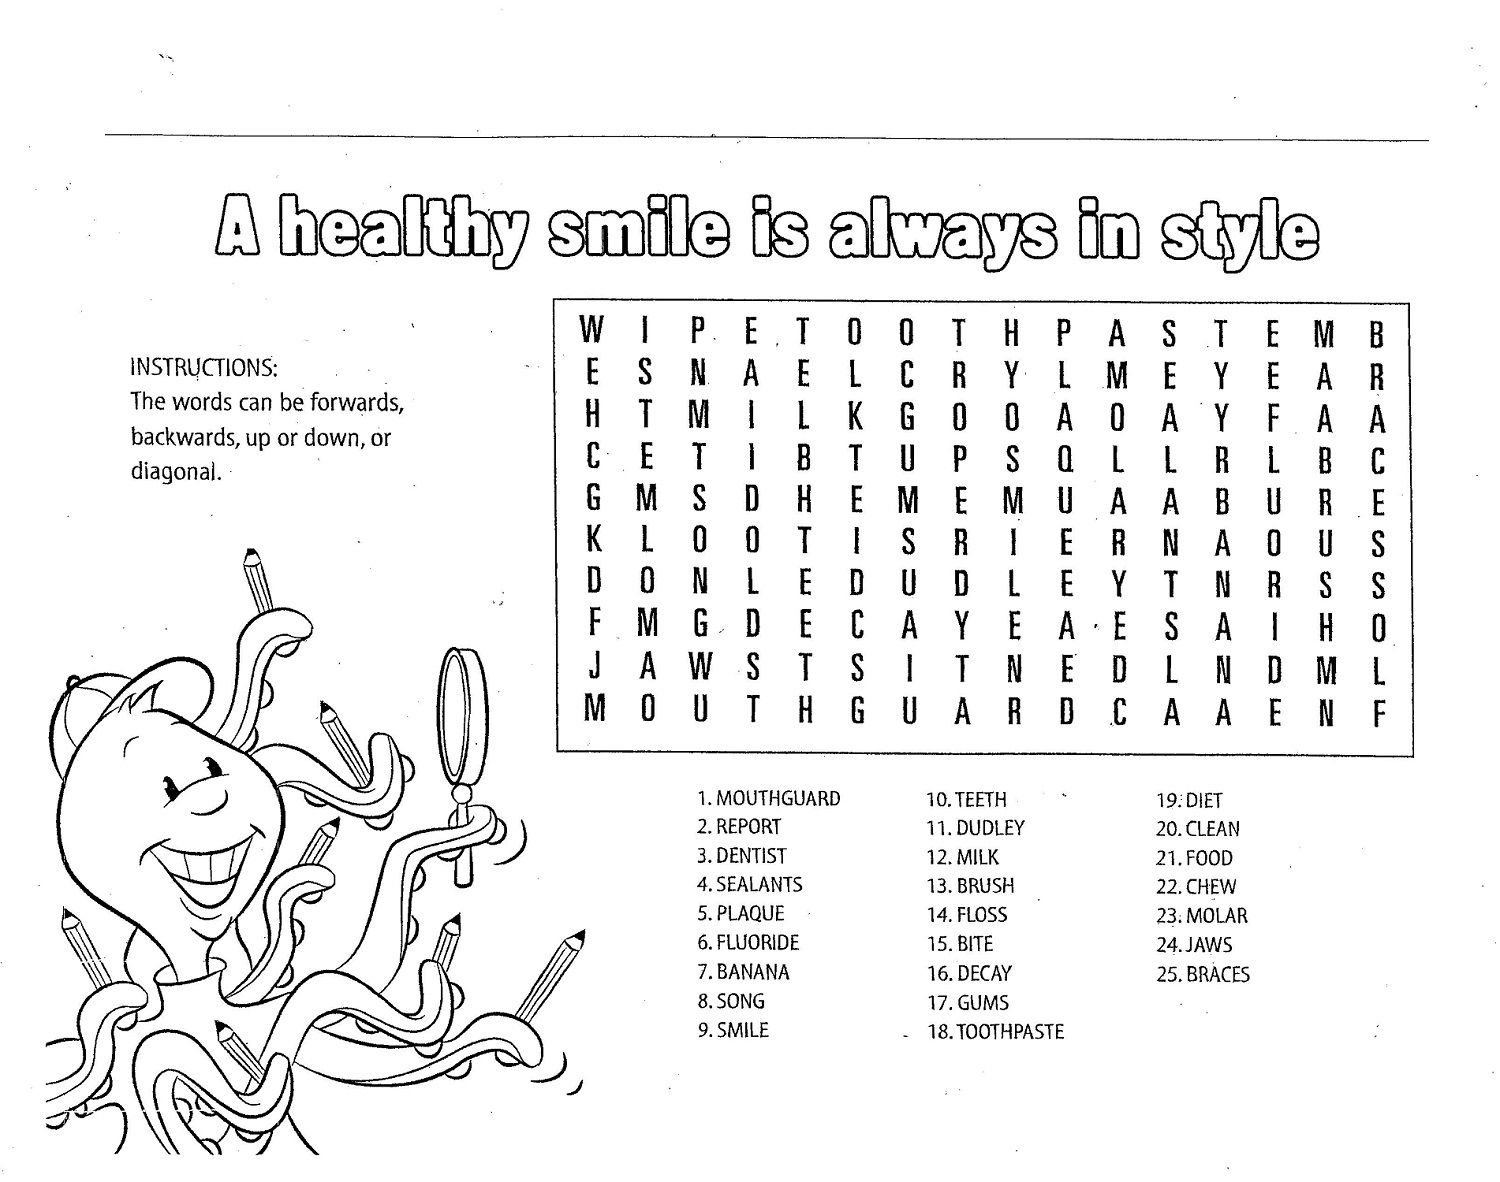 Children's Fun Activity Sheets Healthy Smile Word Search   Educative  Printable   Fun worksheets for kids [ 1182 x 1500 Pixel ]